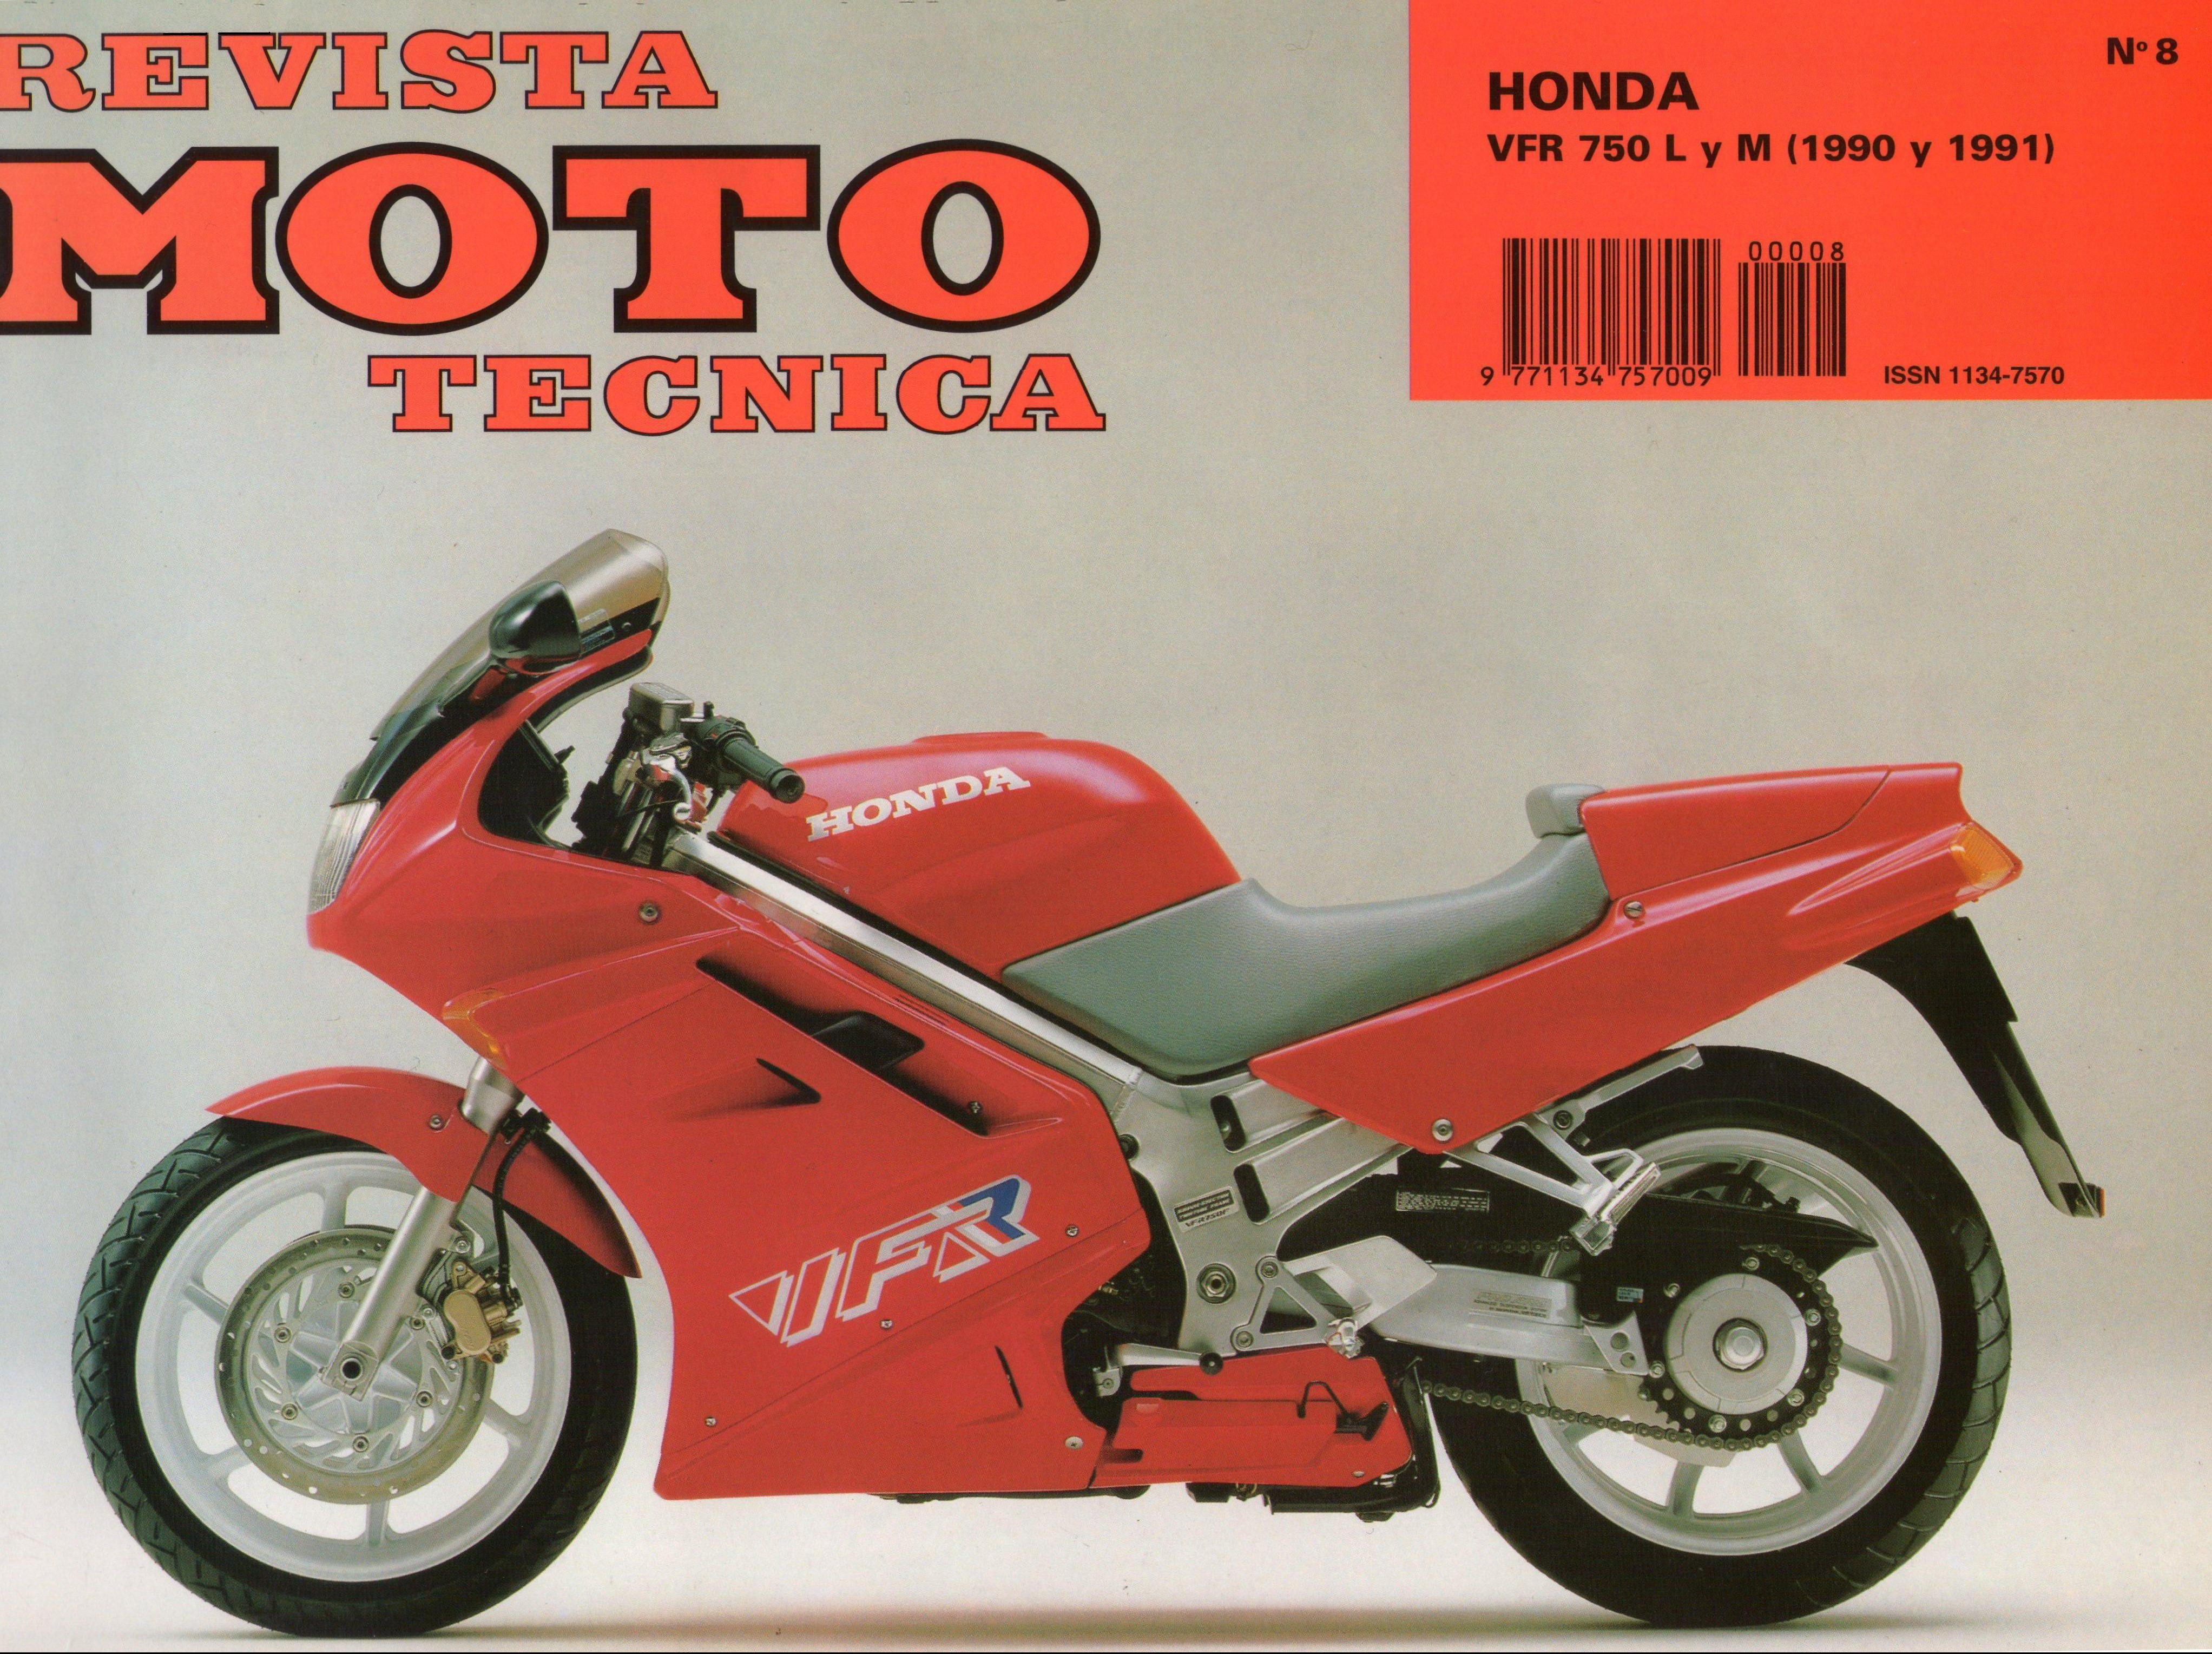 Revista Moto Technica for Honda VFR750L (1990) (Spanish)